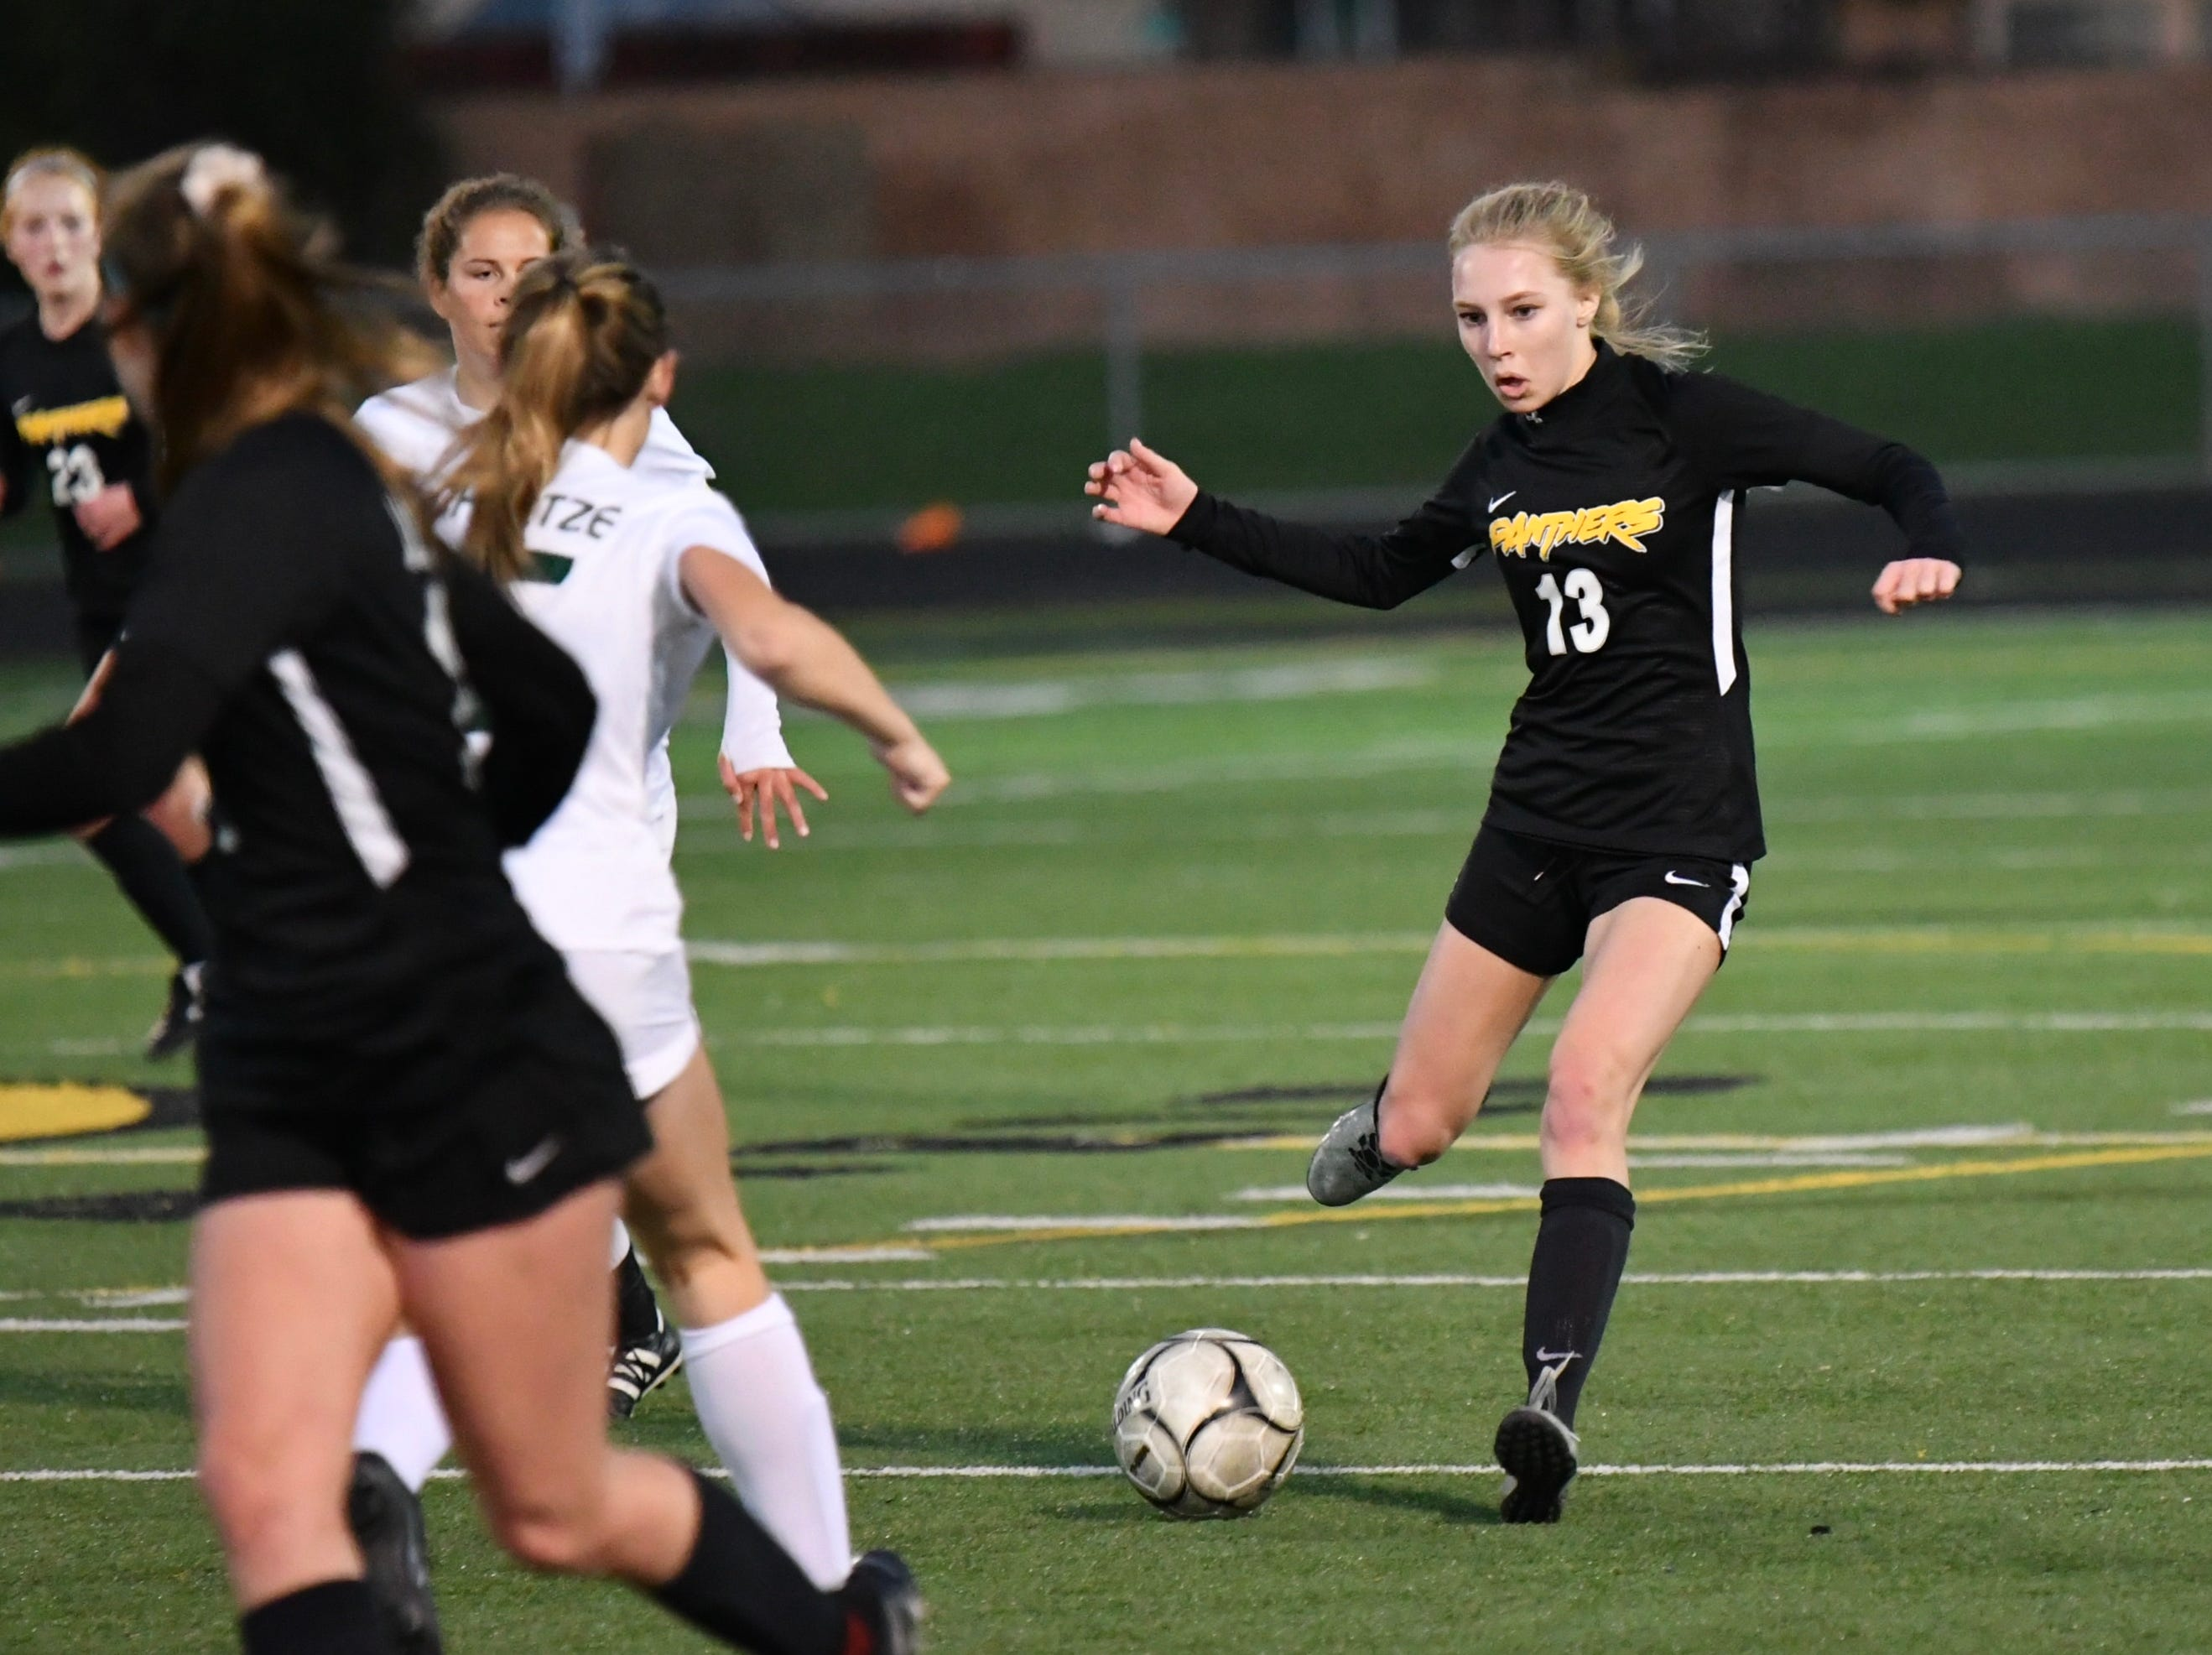 Newbury Park senior Cami Davis looks up for a teammate  on Wednesday night against Royal in the first round of the CIF-Southern Section Division 2 playoffs at Newbury Park High. Newbury Park won, 3-0.